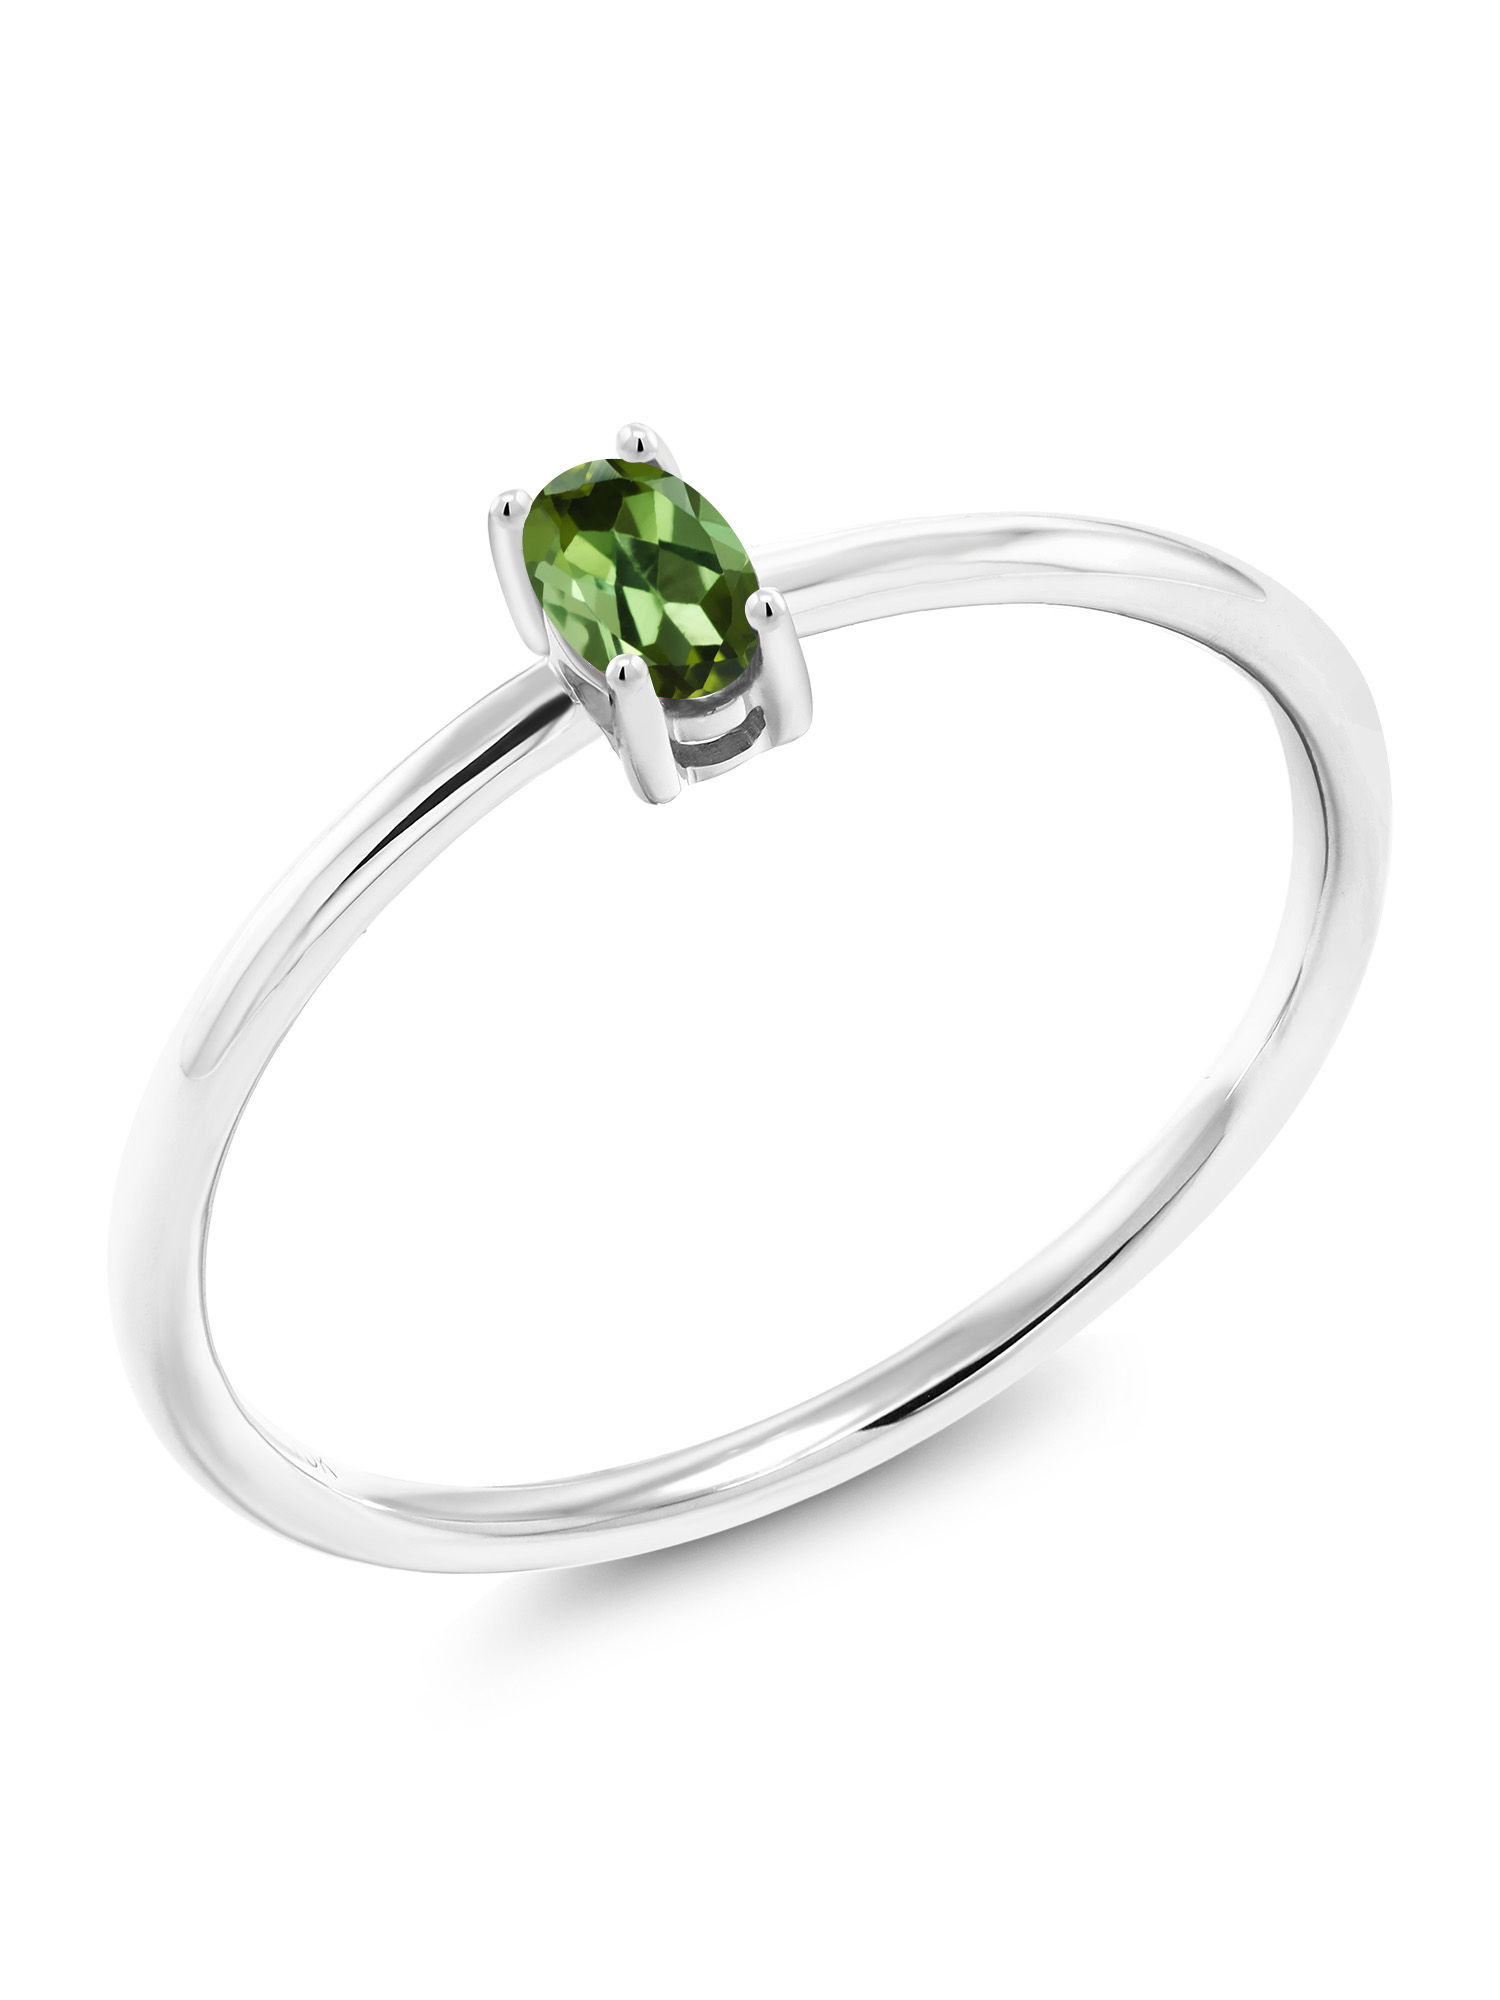 0.26 Ct Oval Green Tourmaline 10K White Gold Ring by